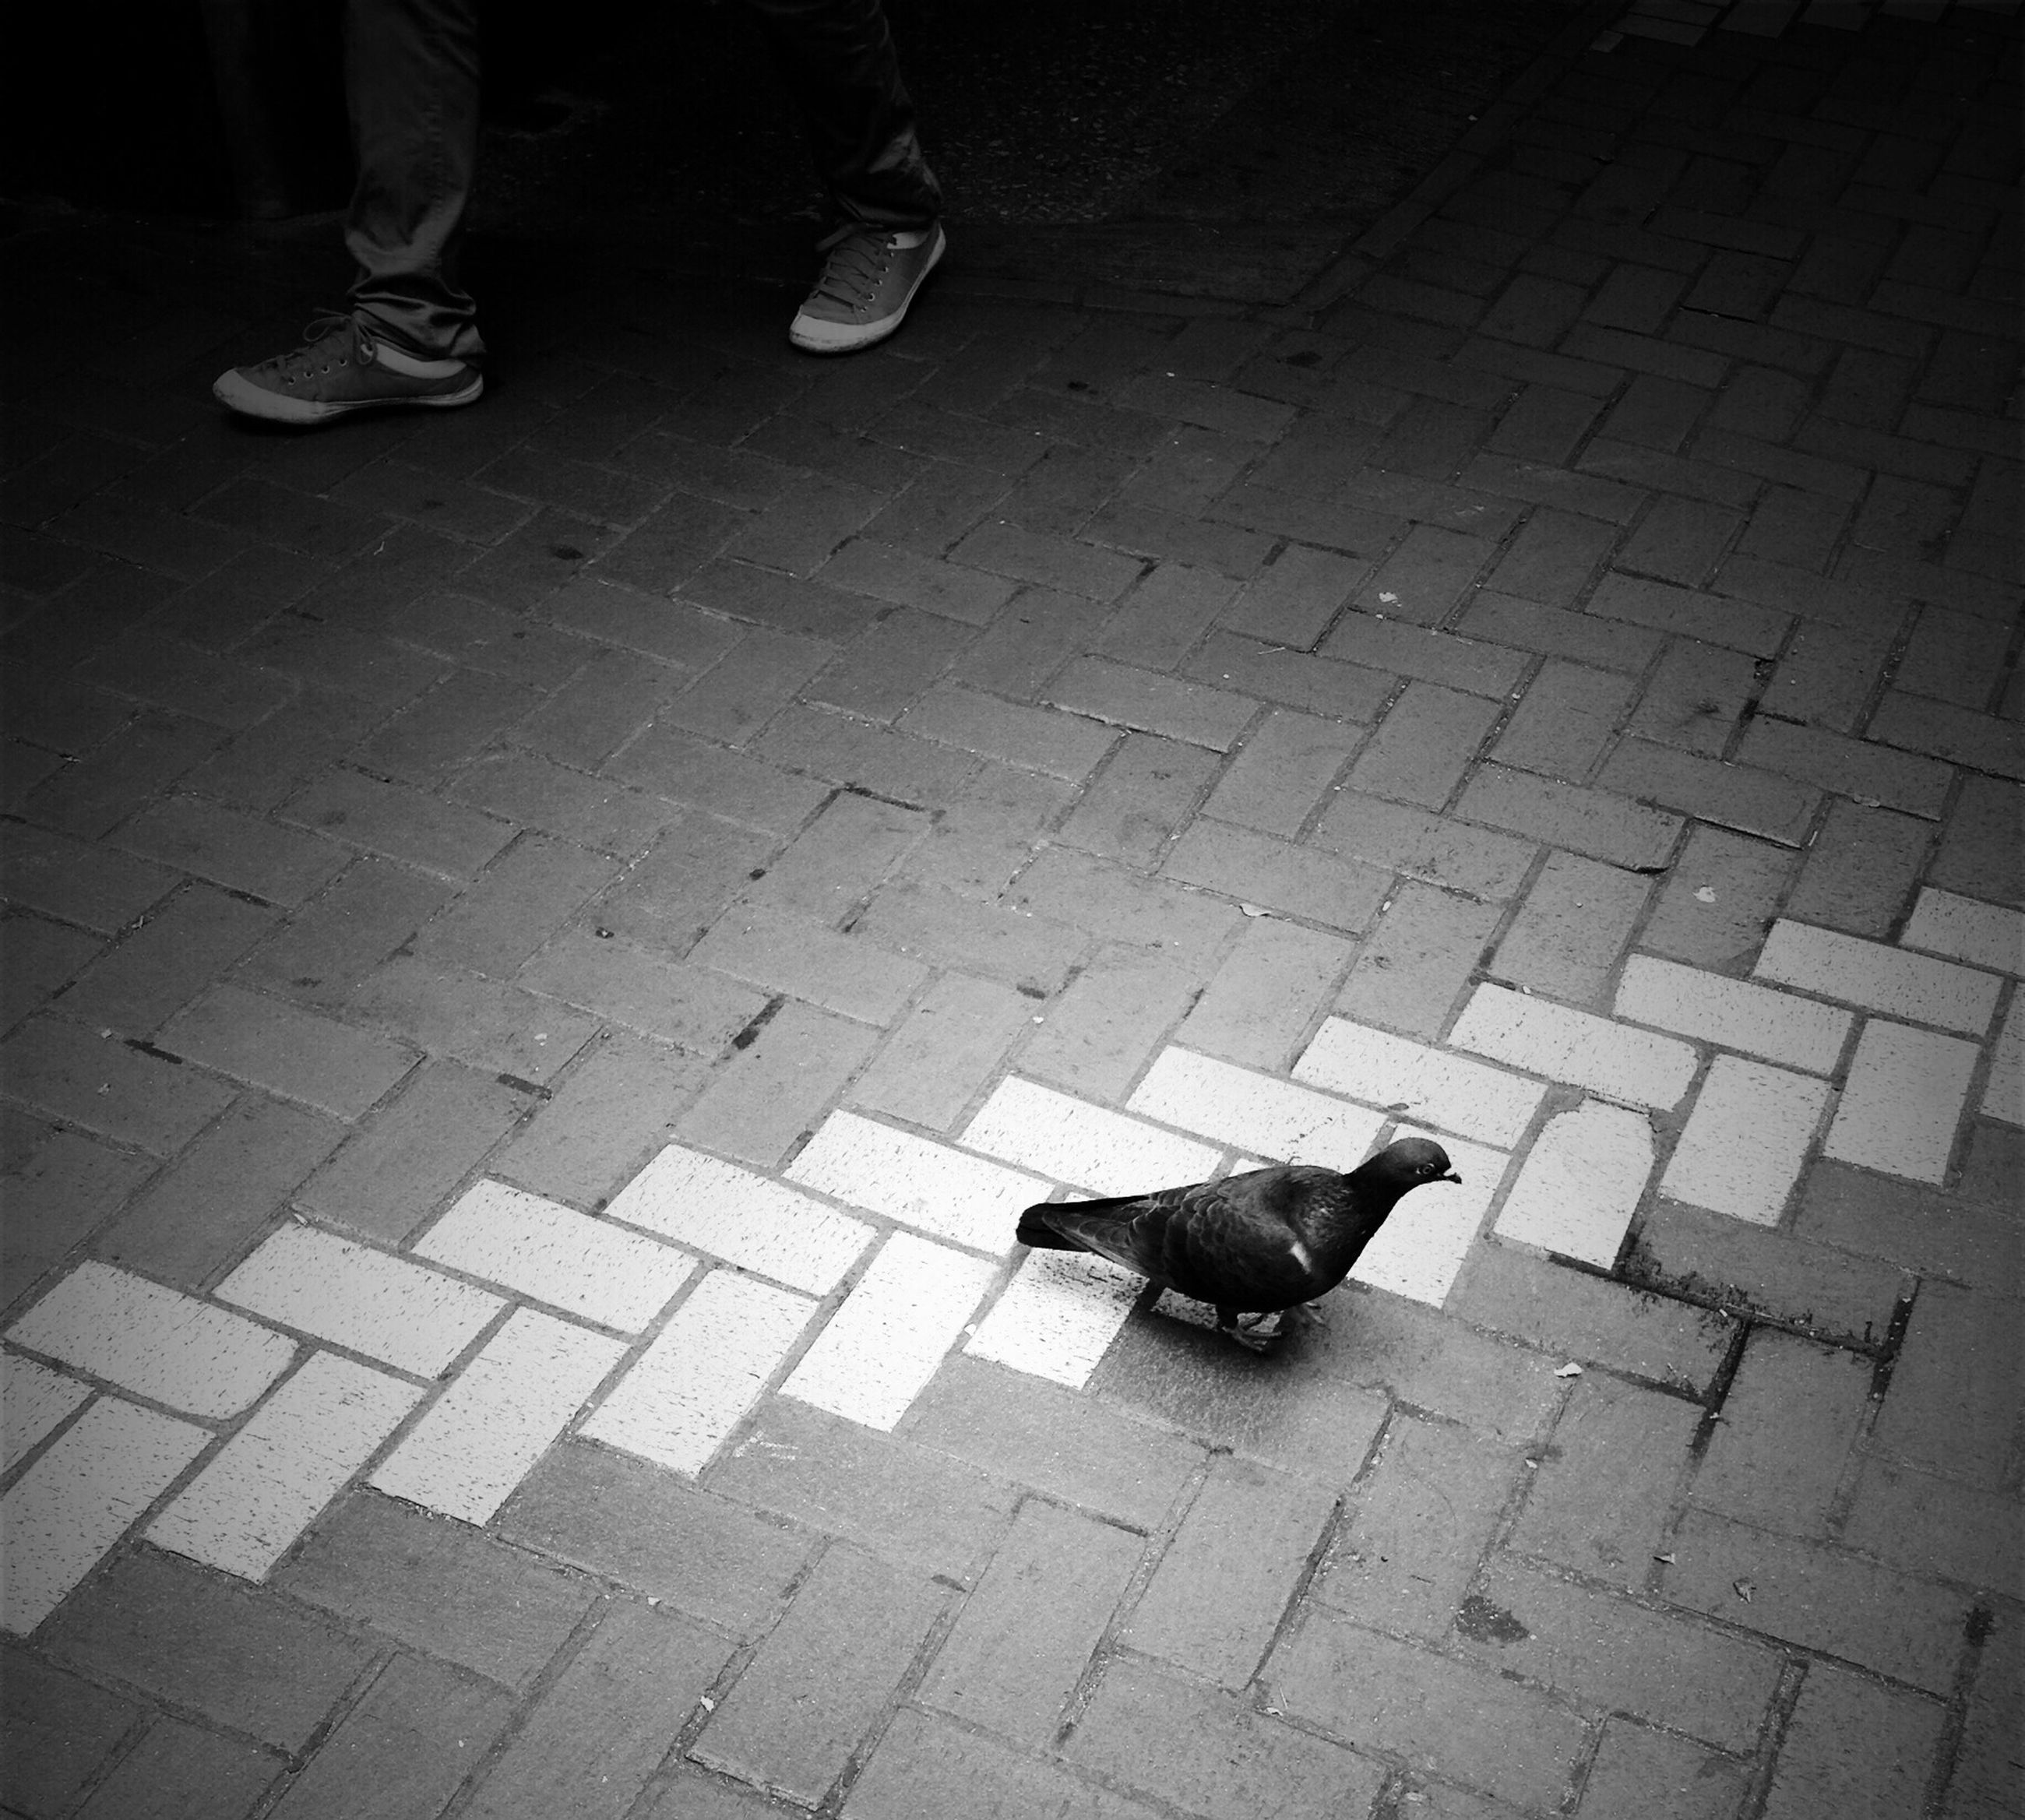 animal themes, one animal, domestic animals, pets, high angle view, low section, dog, mammal, street, shoe, person, sunlight, sidewalk, cobblestone, paving stone, shadow, outdoors, footpath